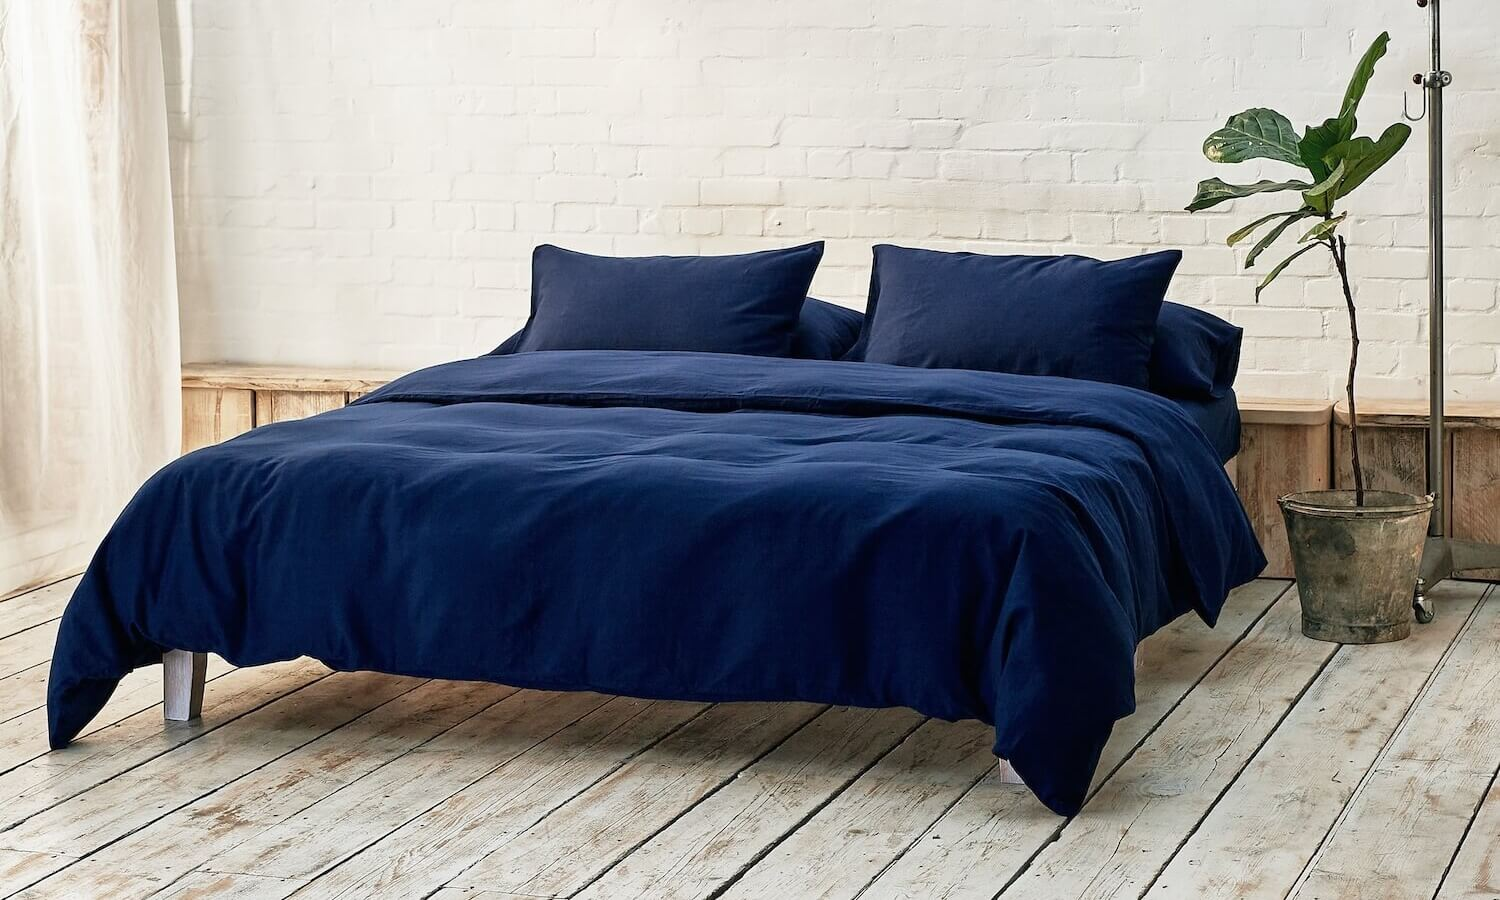 navy blue duvet cover, two pillowcases, and bottom sheet on double bed in apartment with plant and wooden flooring